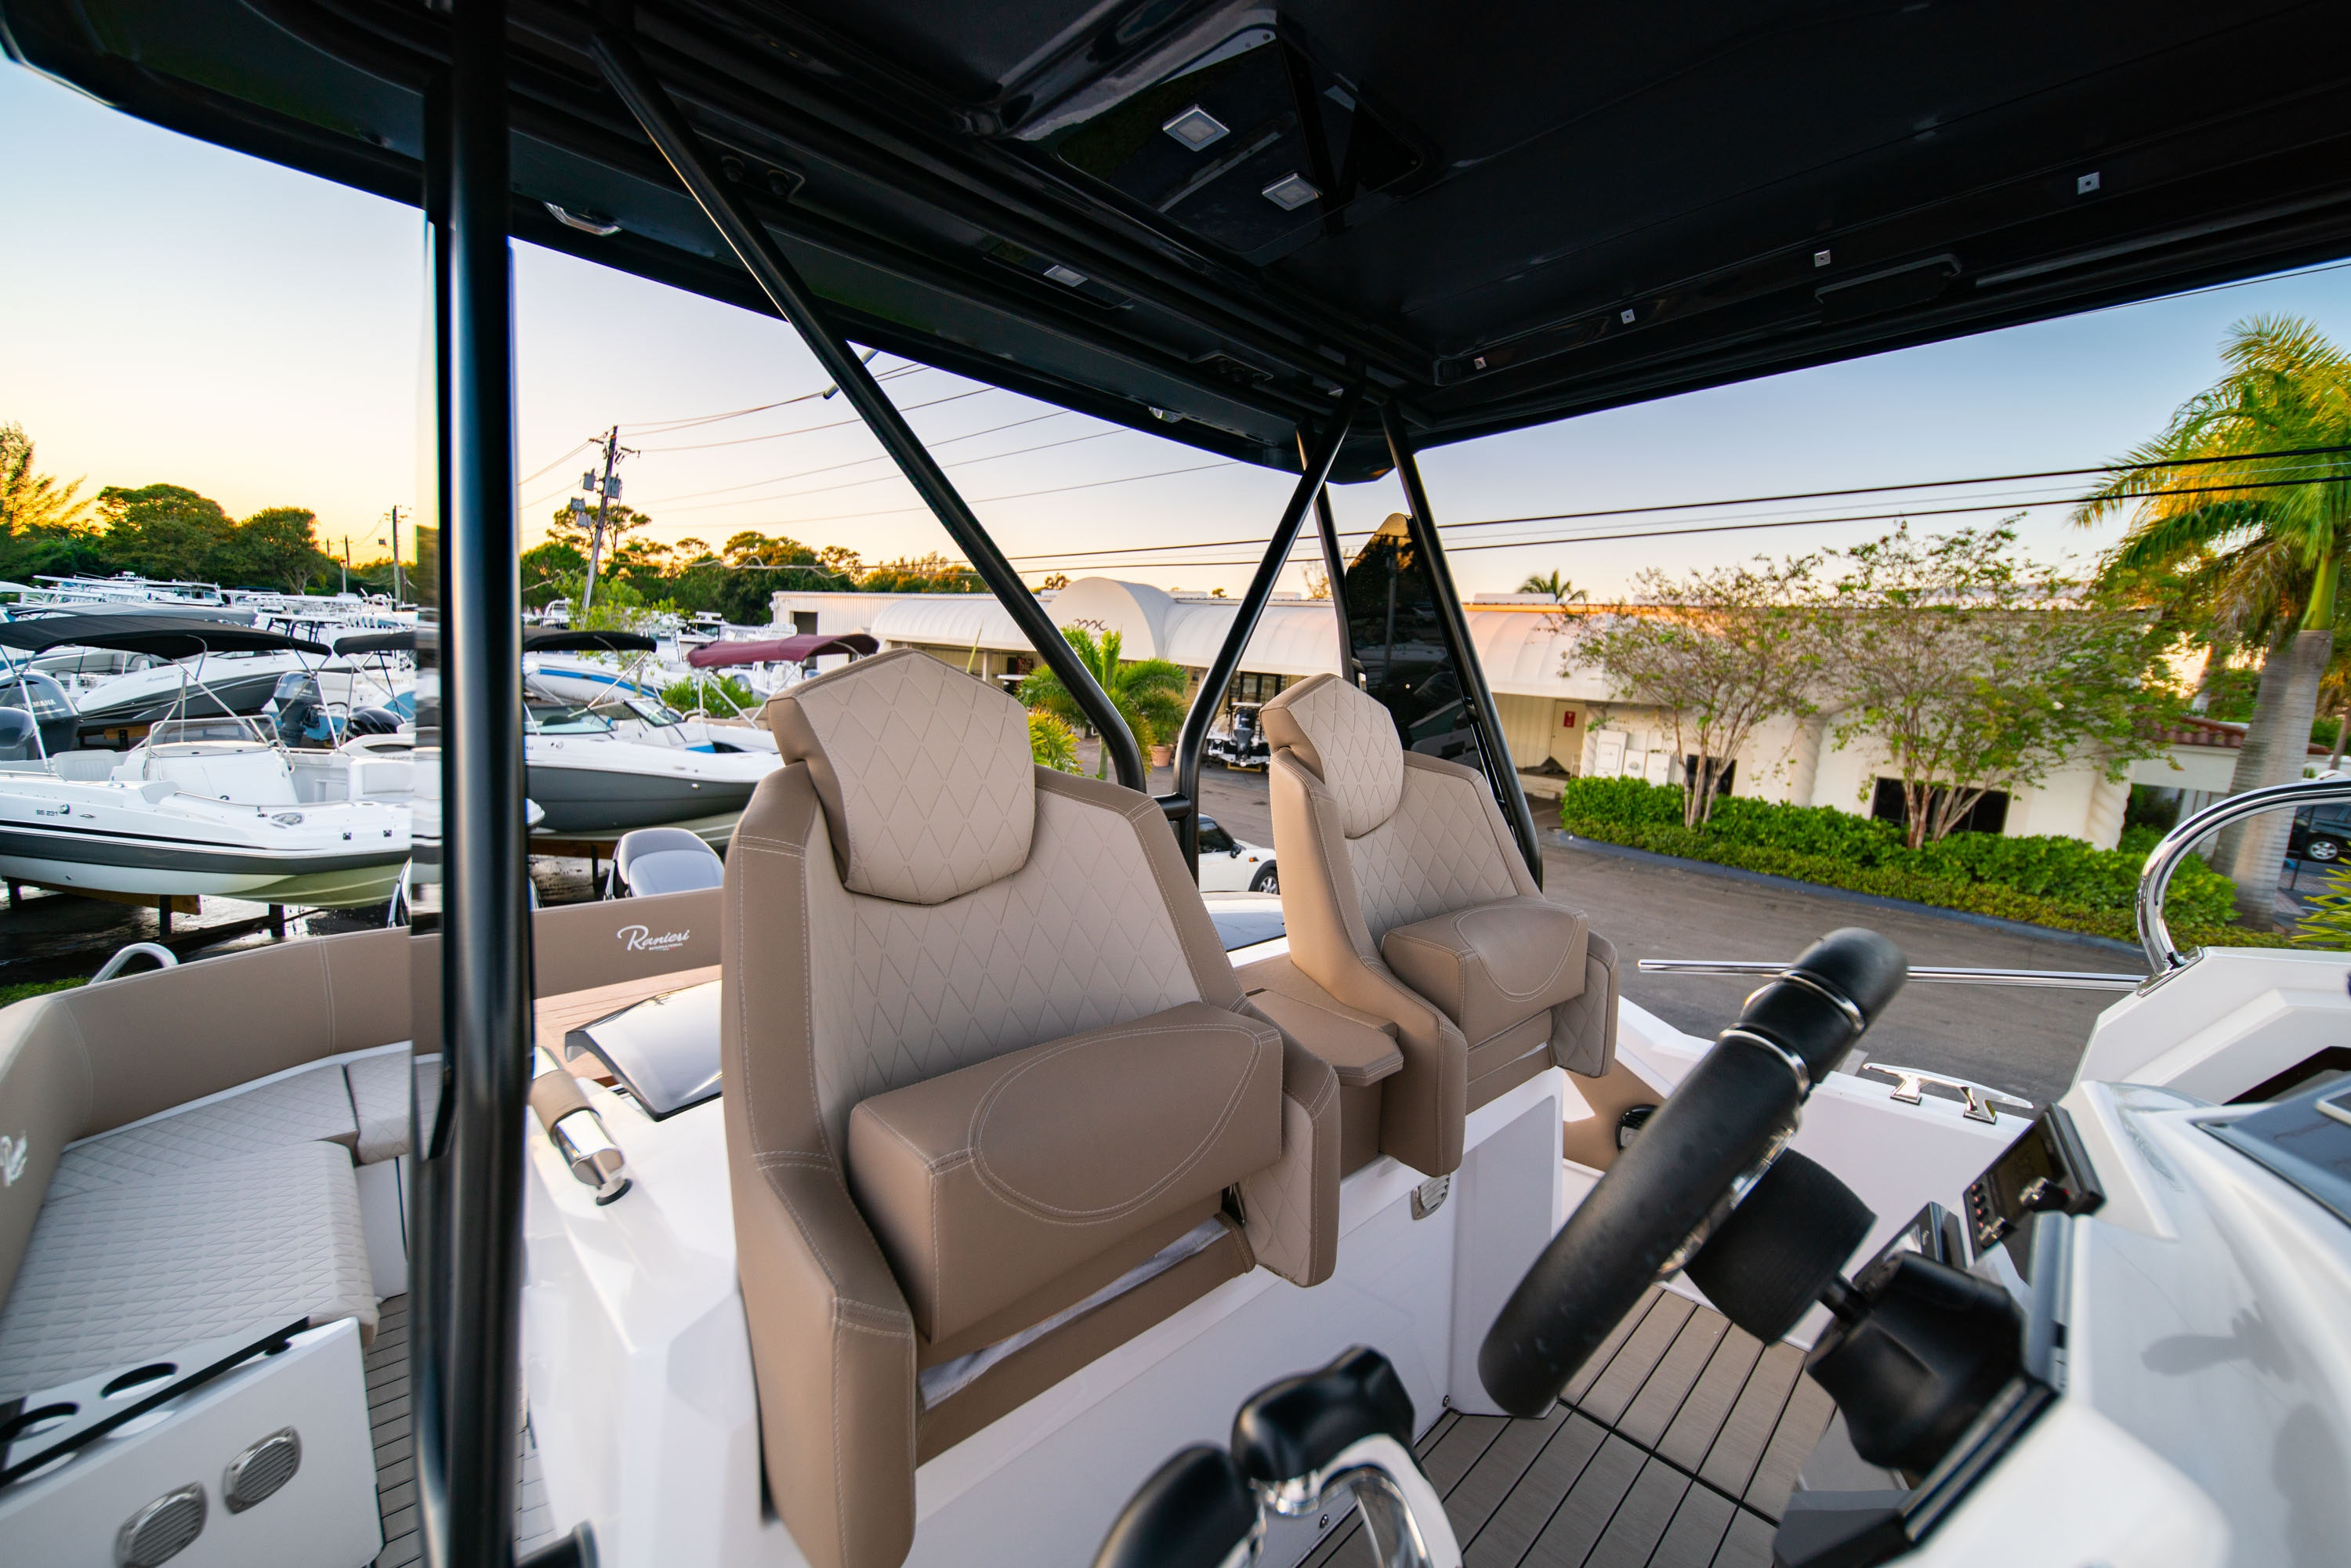 Thumbnail 26 for New 2019 Ranieri Next 370 SH boat for sale in West Palm Beach, FL